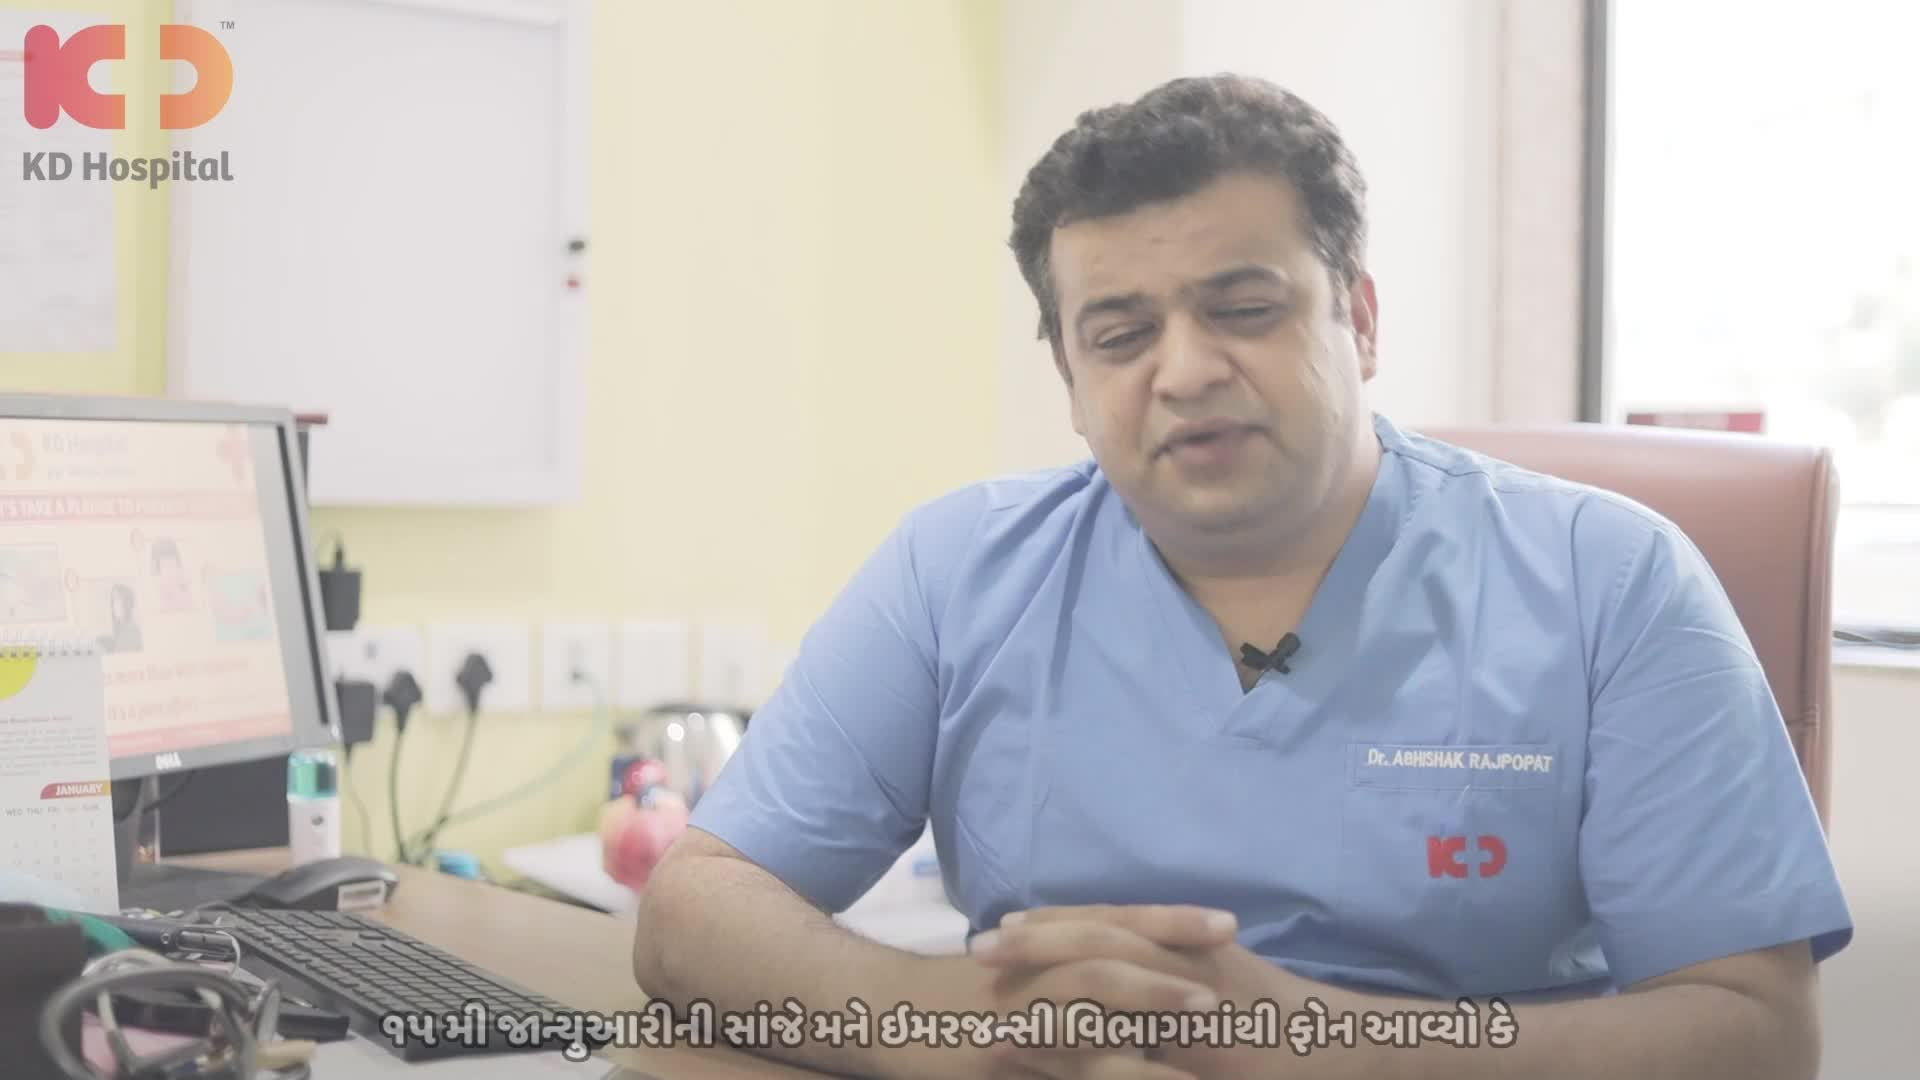 KD Hospital feels a moment of pride for having seen the faith prevailing - when our cardiologist Dr Abhishek Rajpopat could save the life of Mr Vinod when he came to the hospital's emergency department. Hear the whole story of his survival from Mr Vinod himself. To know the full details, please visit https://youtu.be/gS6QShd6CVM  #KDHospital #Compassion #ER #EmergencyMedicine #CardiacArrest #AcuteMI #Cardiologist #CardiacCare #Diagnosis #Therapeutics #patienttestimonial #patient #testimonial #testimony #Awareness #wellness #goodhealth #wellnessthatworks #Nusring #NABHHospital #QualityCare #hospitals #doctors #healthcare #medical #health #physicians #surgery #surgeon #Ahmedabad #Gujarat #India